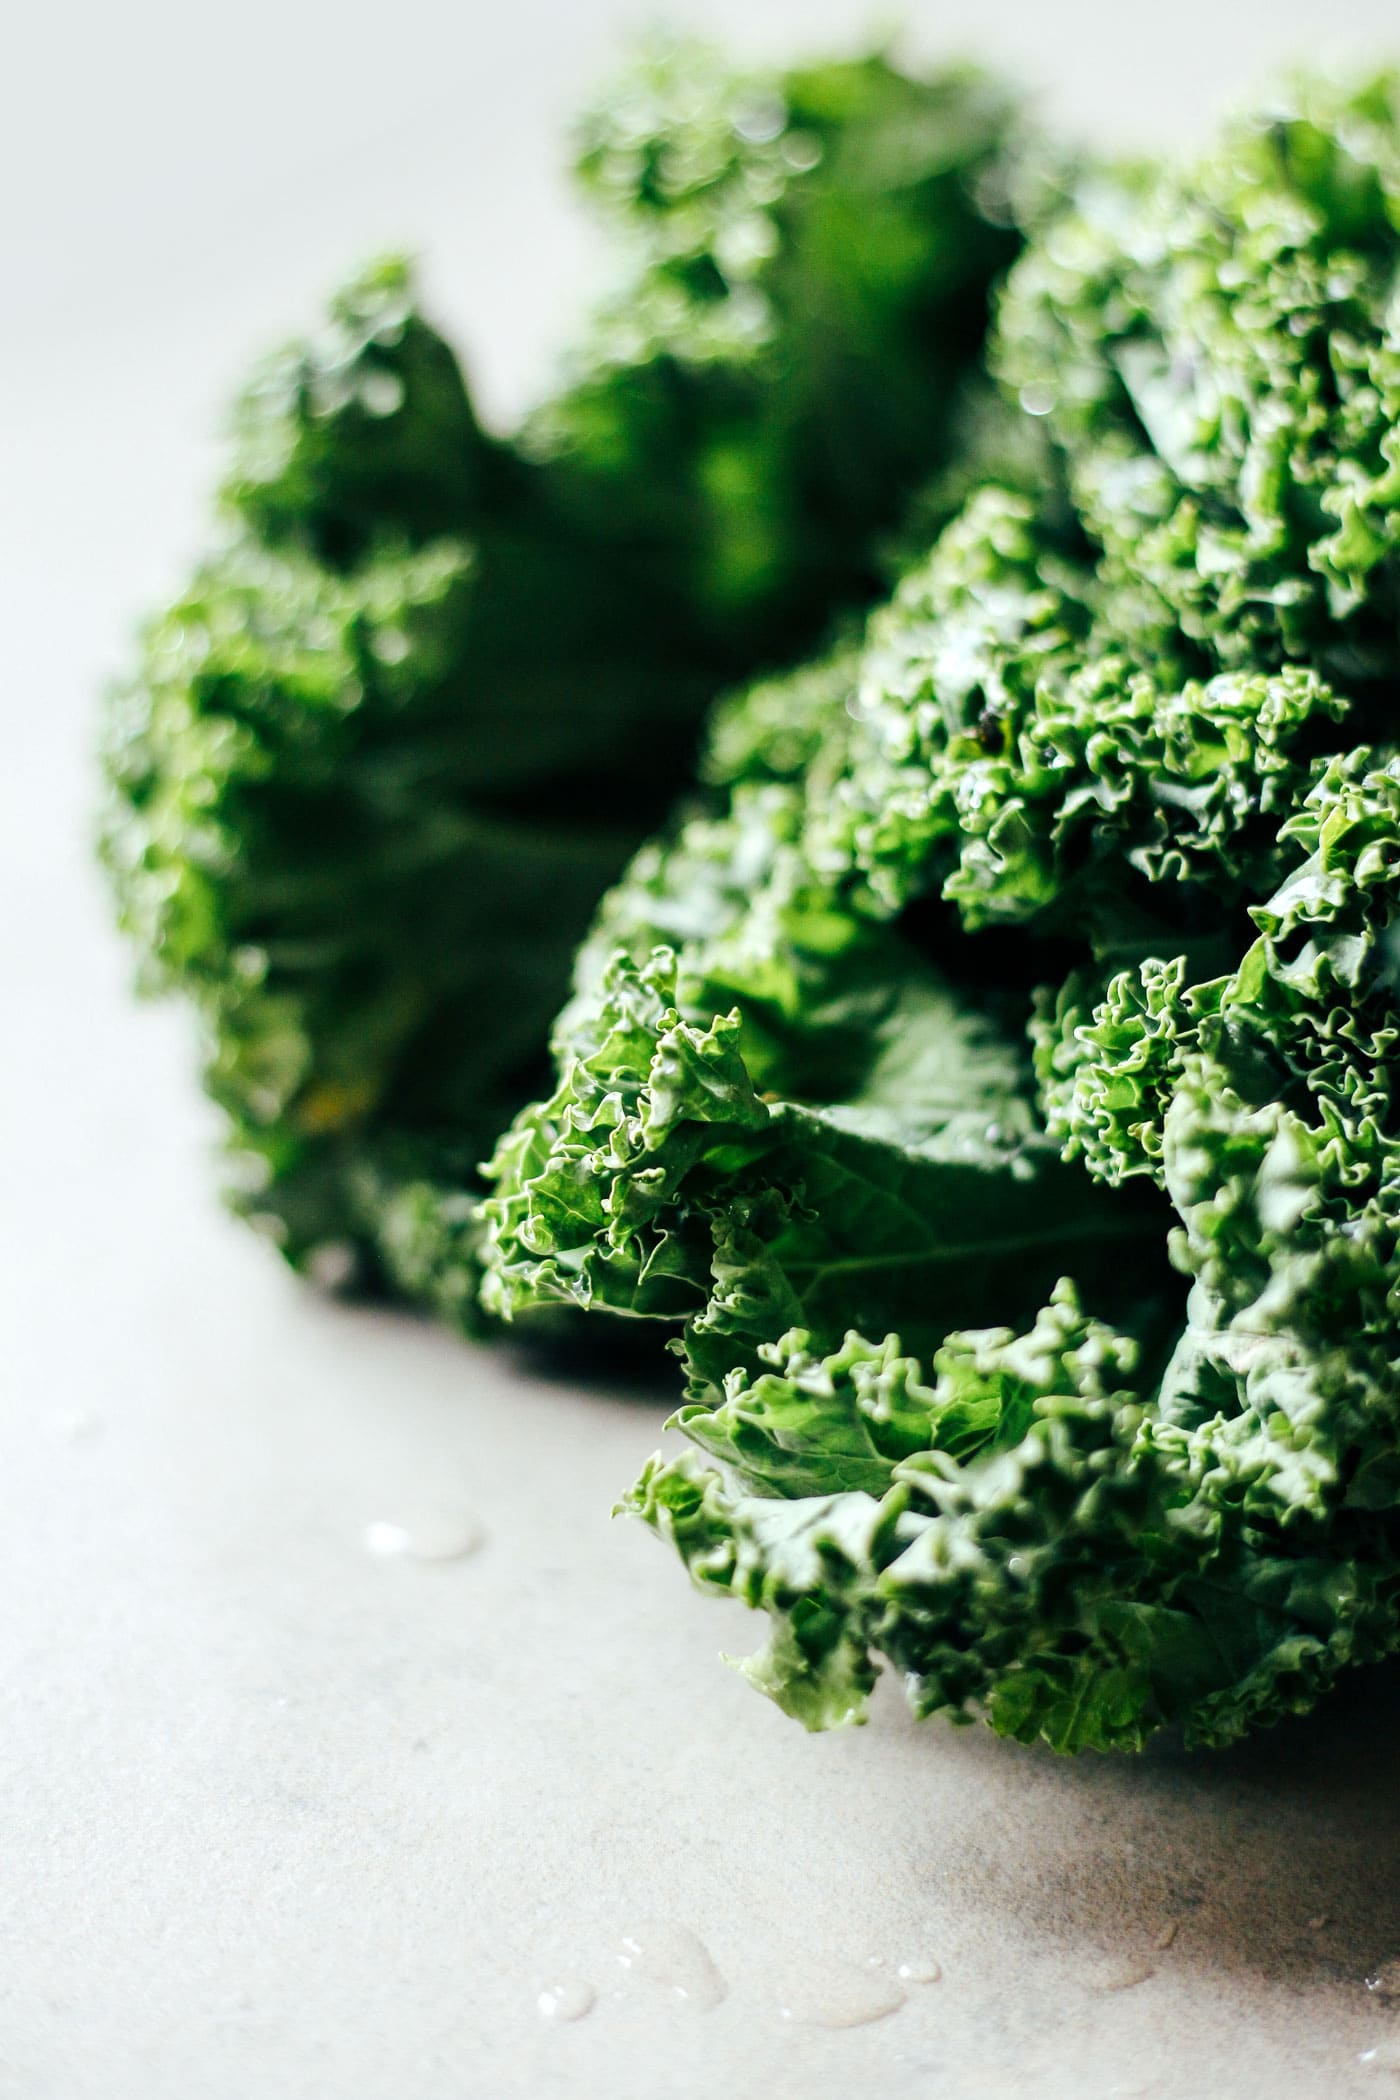 Crunchy Chocolate & Buckwheat Kale Chips